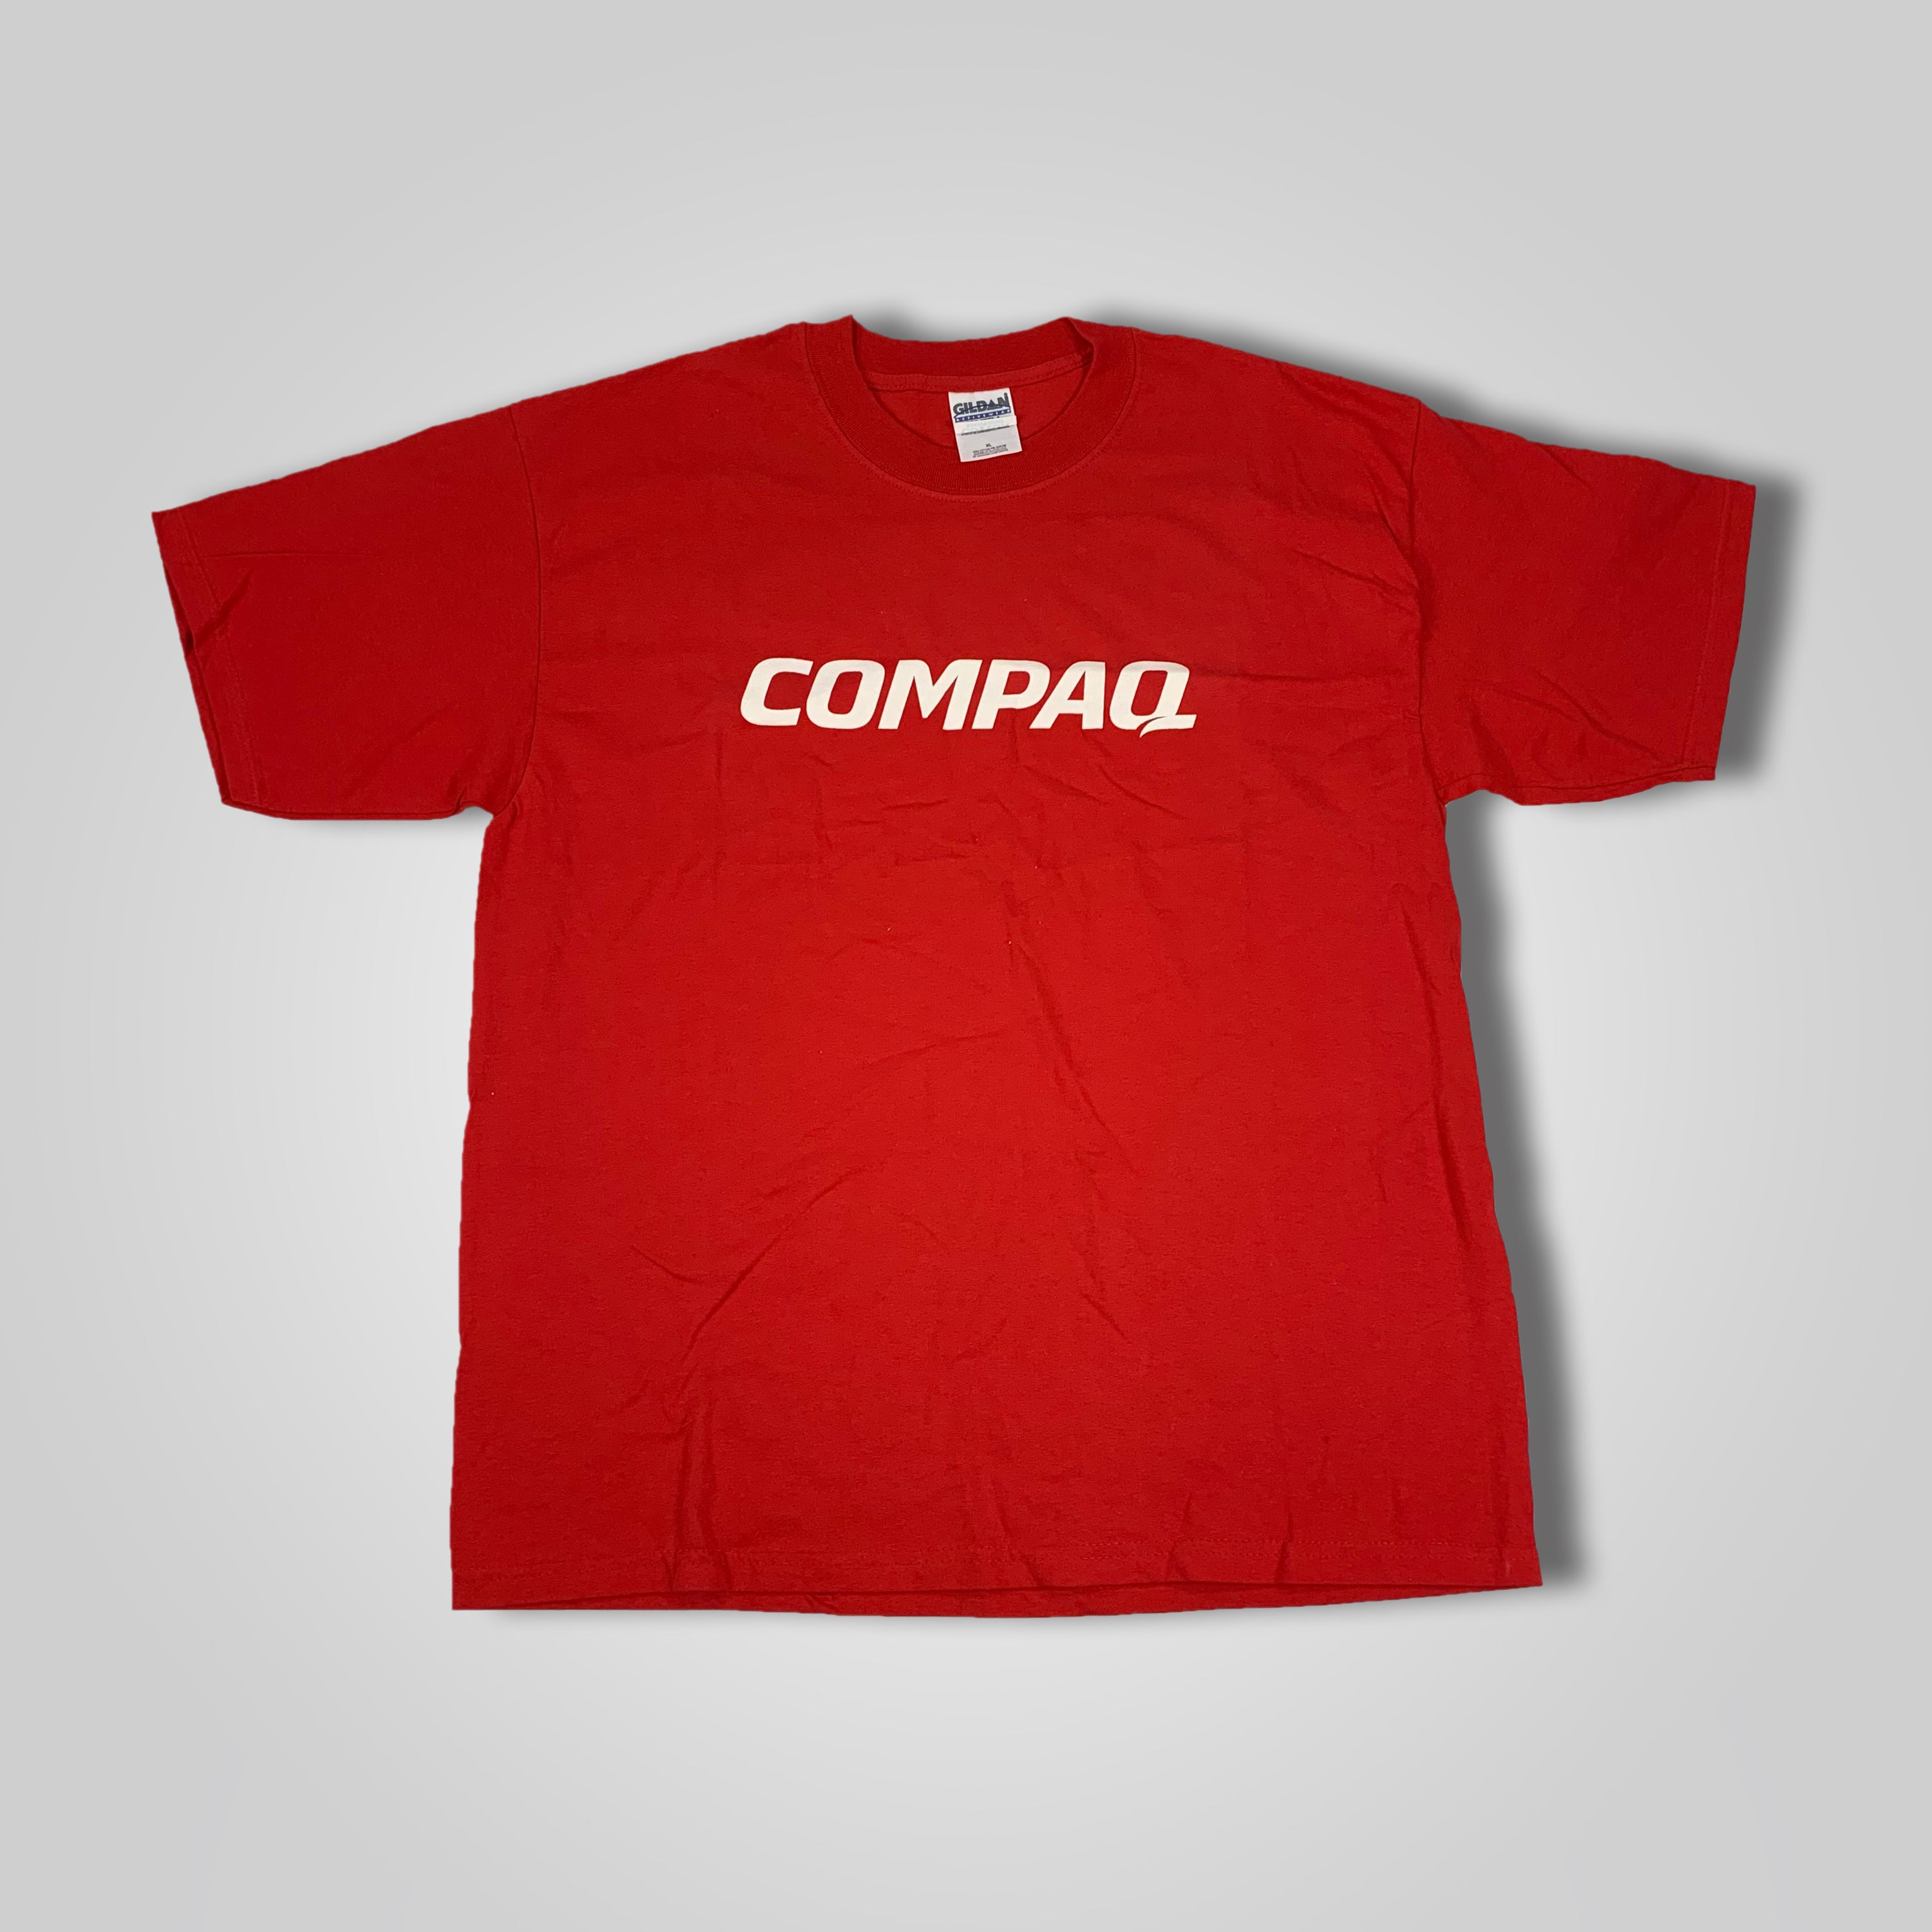 90s Compaq Computers Spell Out Promo Tech Software T-Shirt